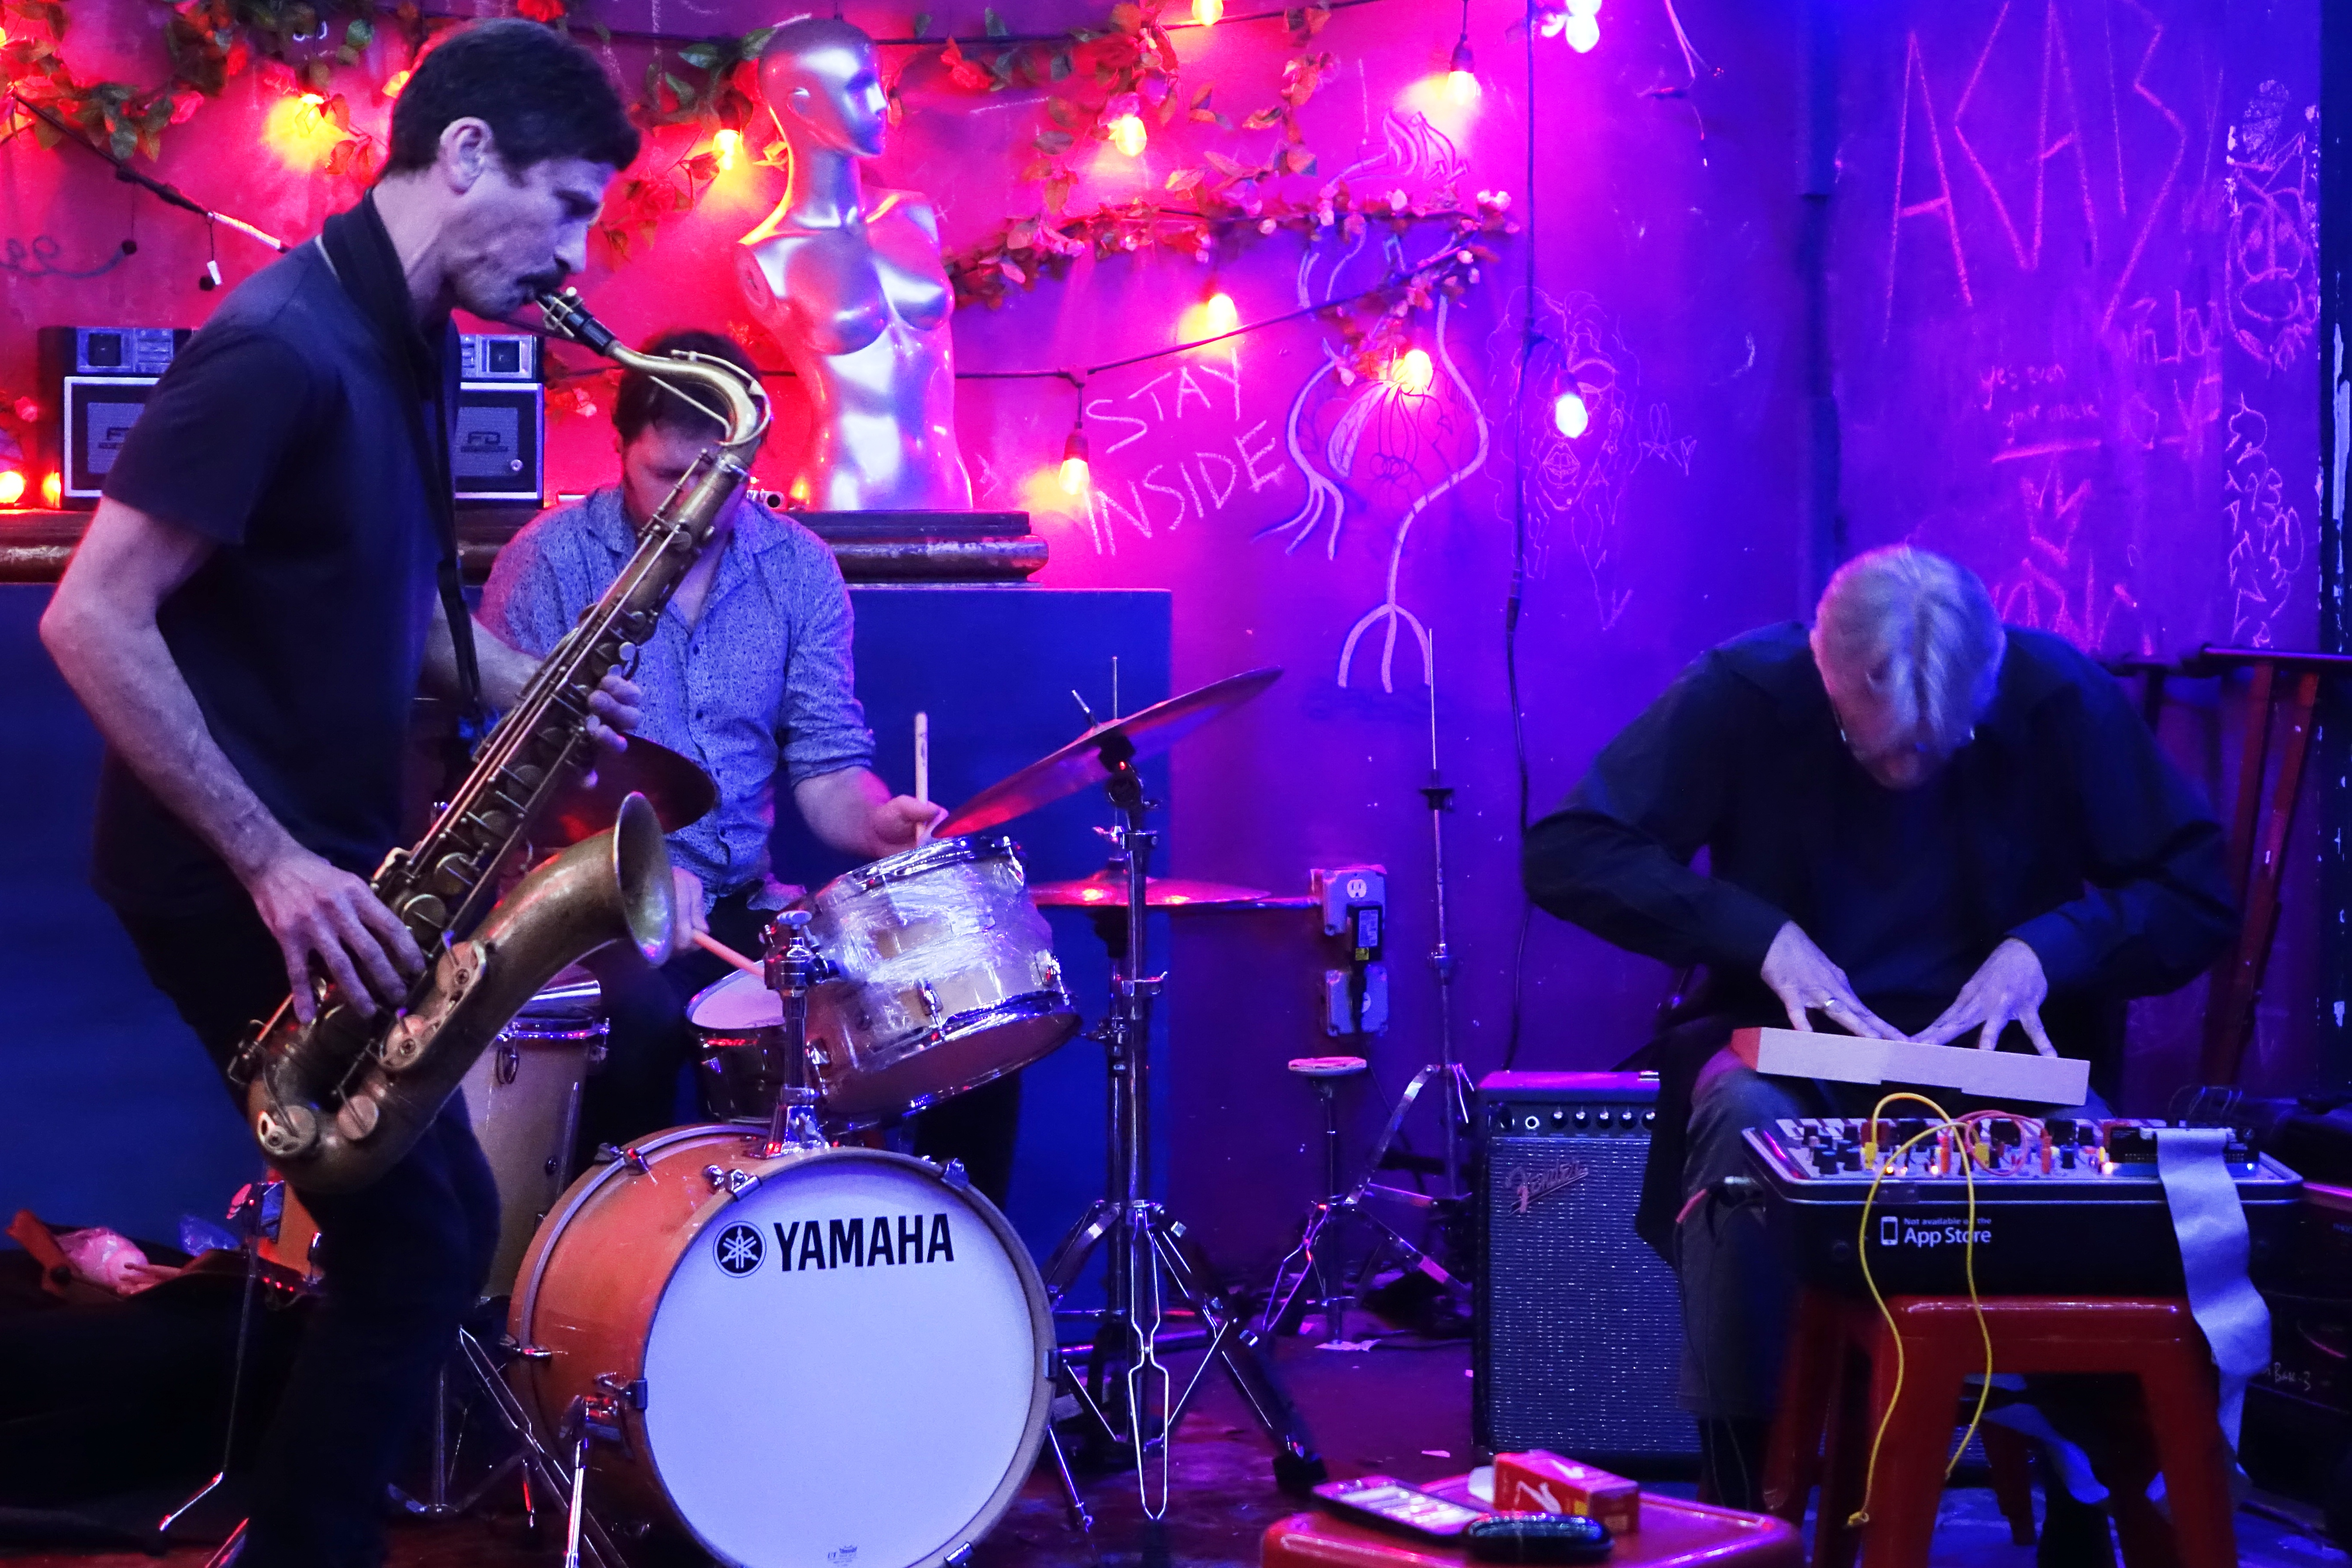 Stephen Gauci, Jeremy Carlstedt and Hans Tammen at the Bushwick Public House, Brooklyn in June 2019